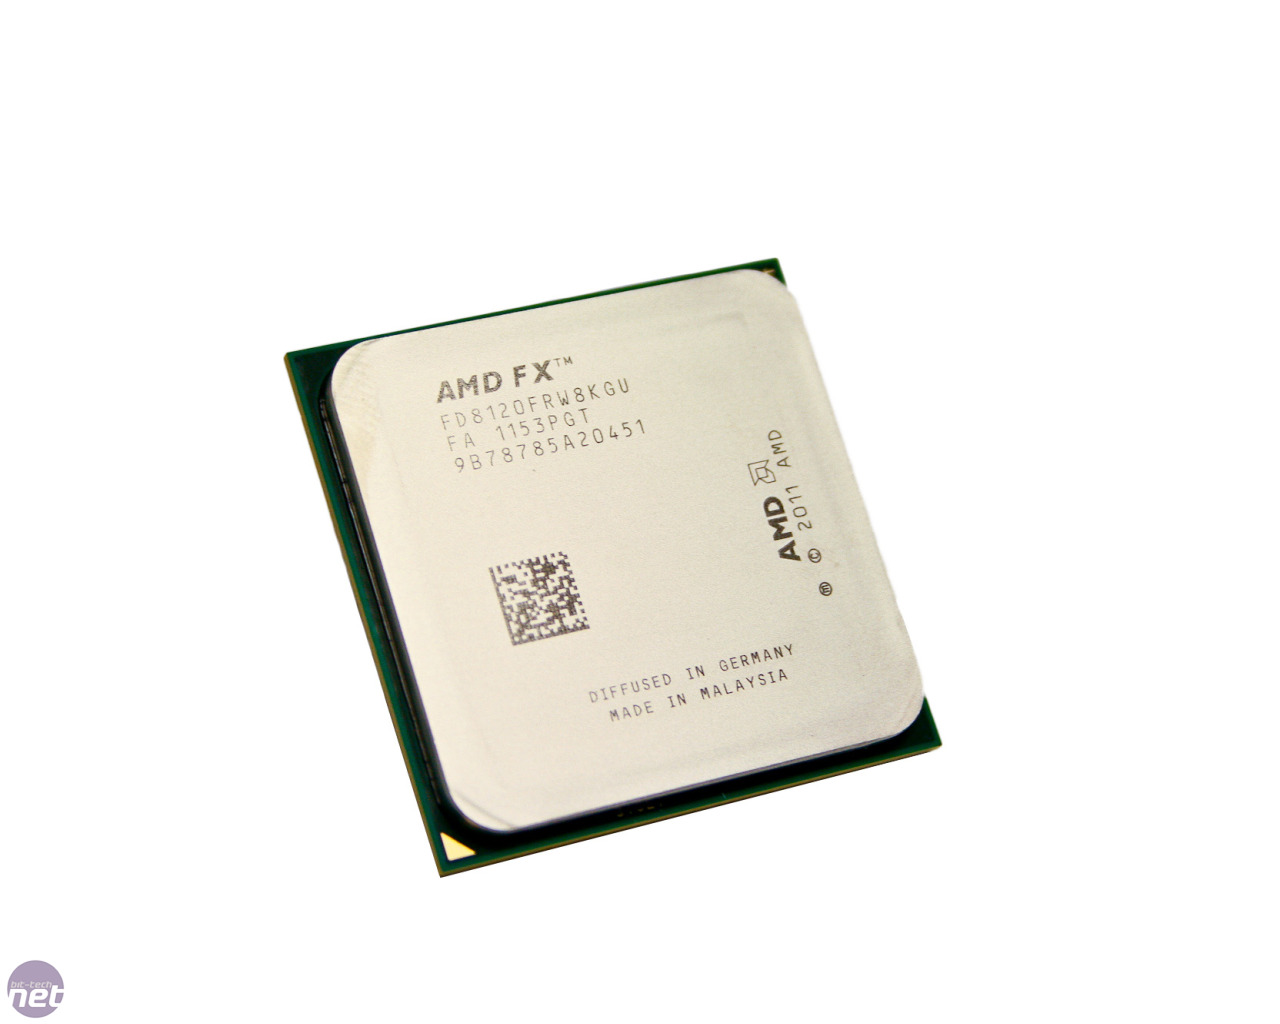 Amd Fx Review